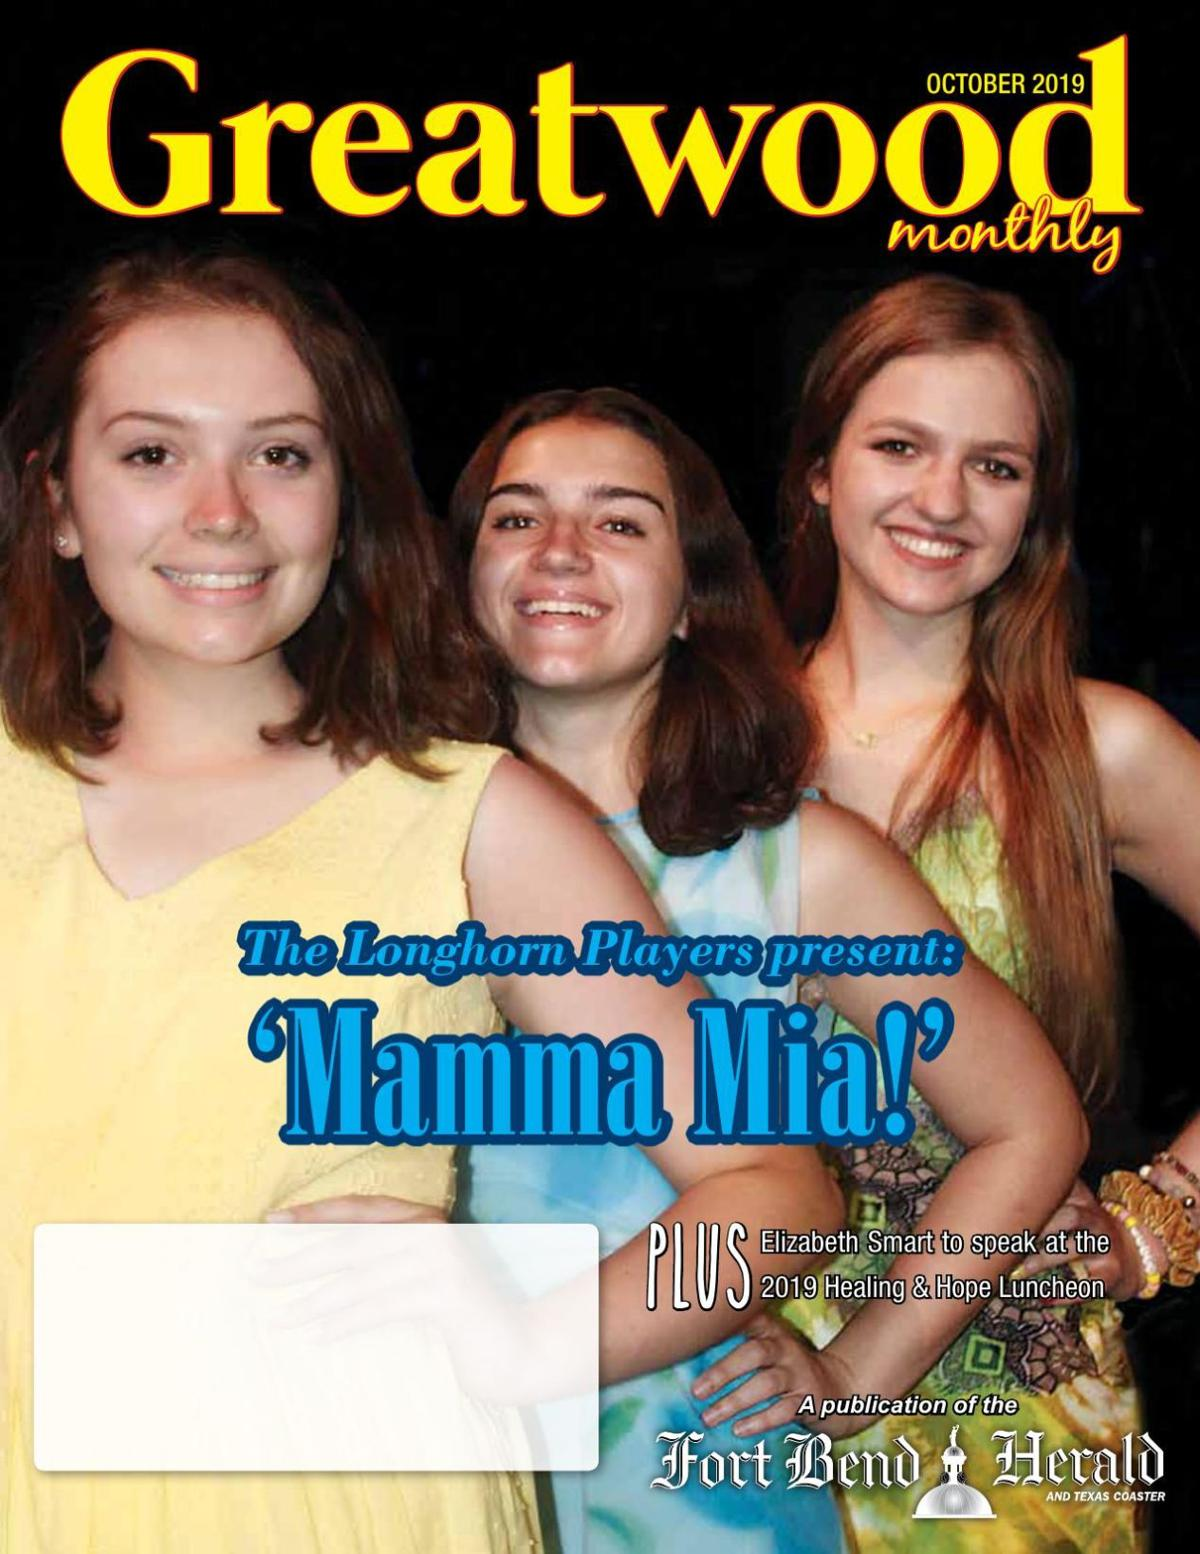 Greatwood Monthly: October 2019